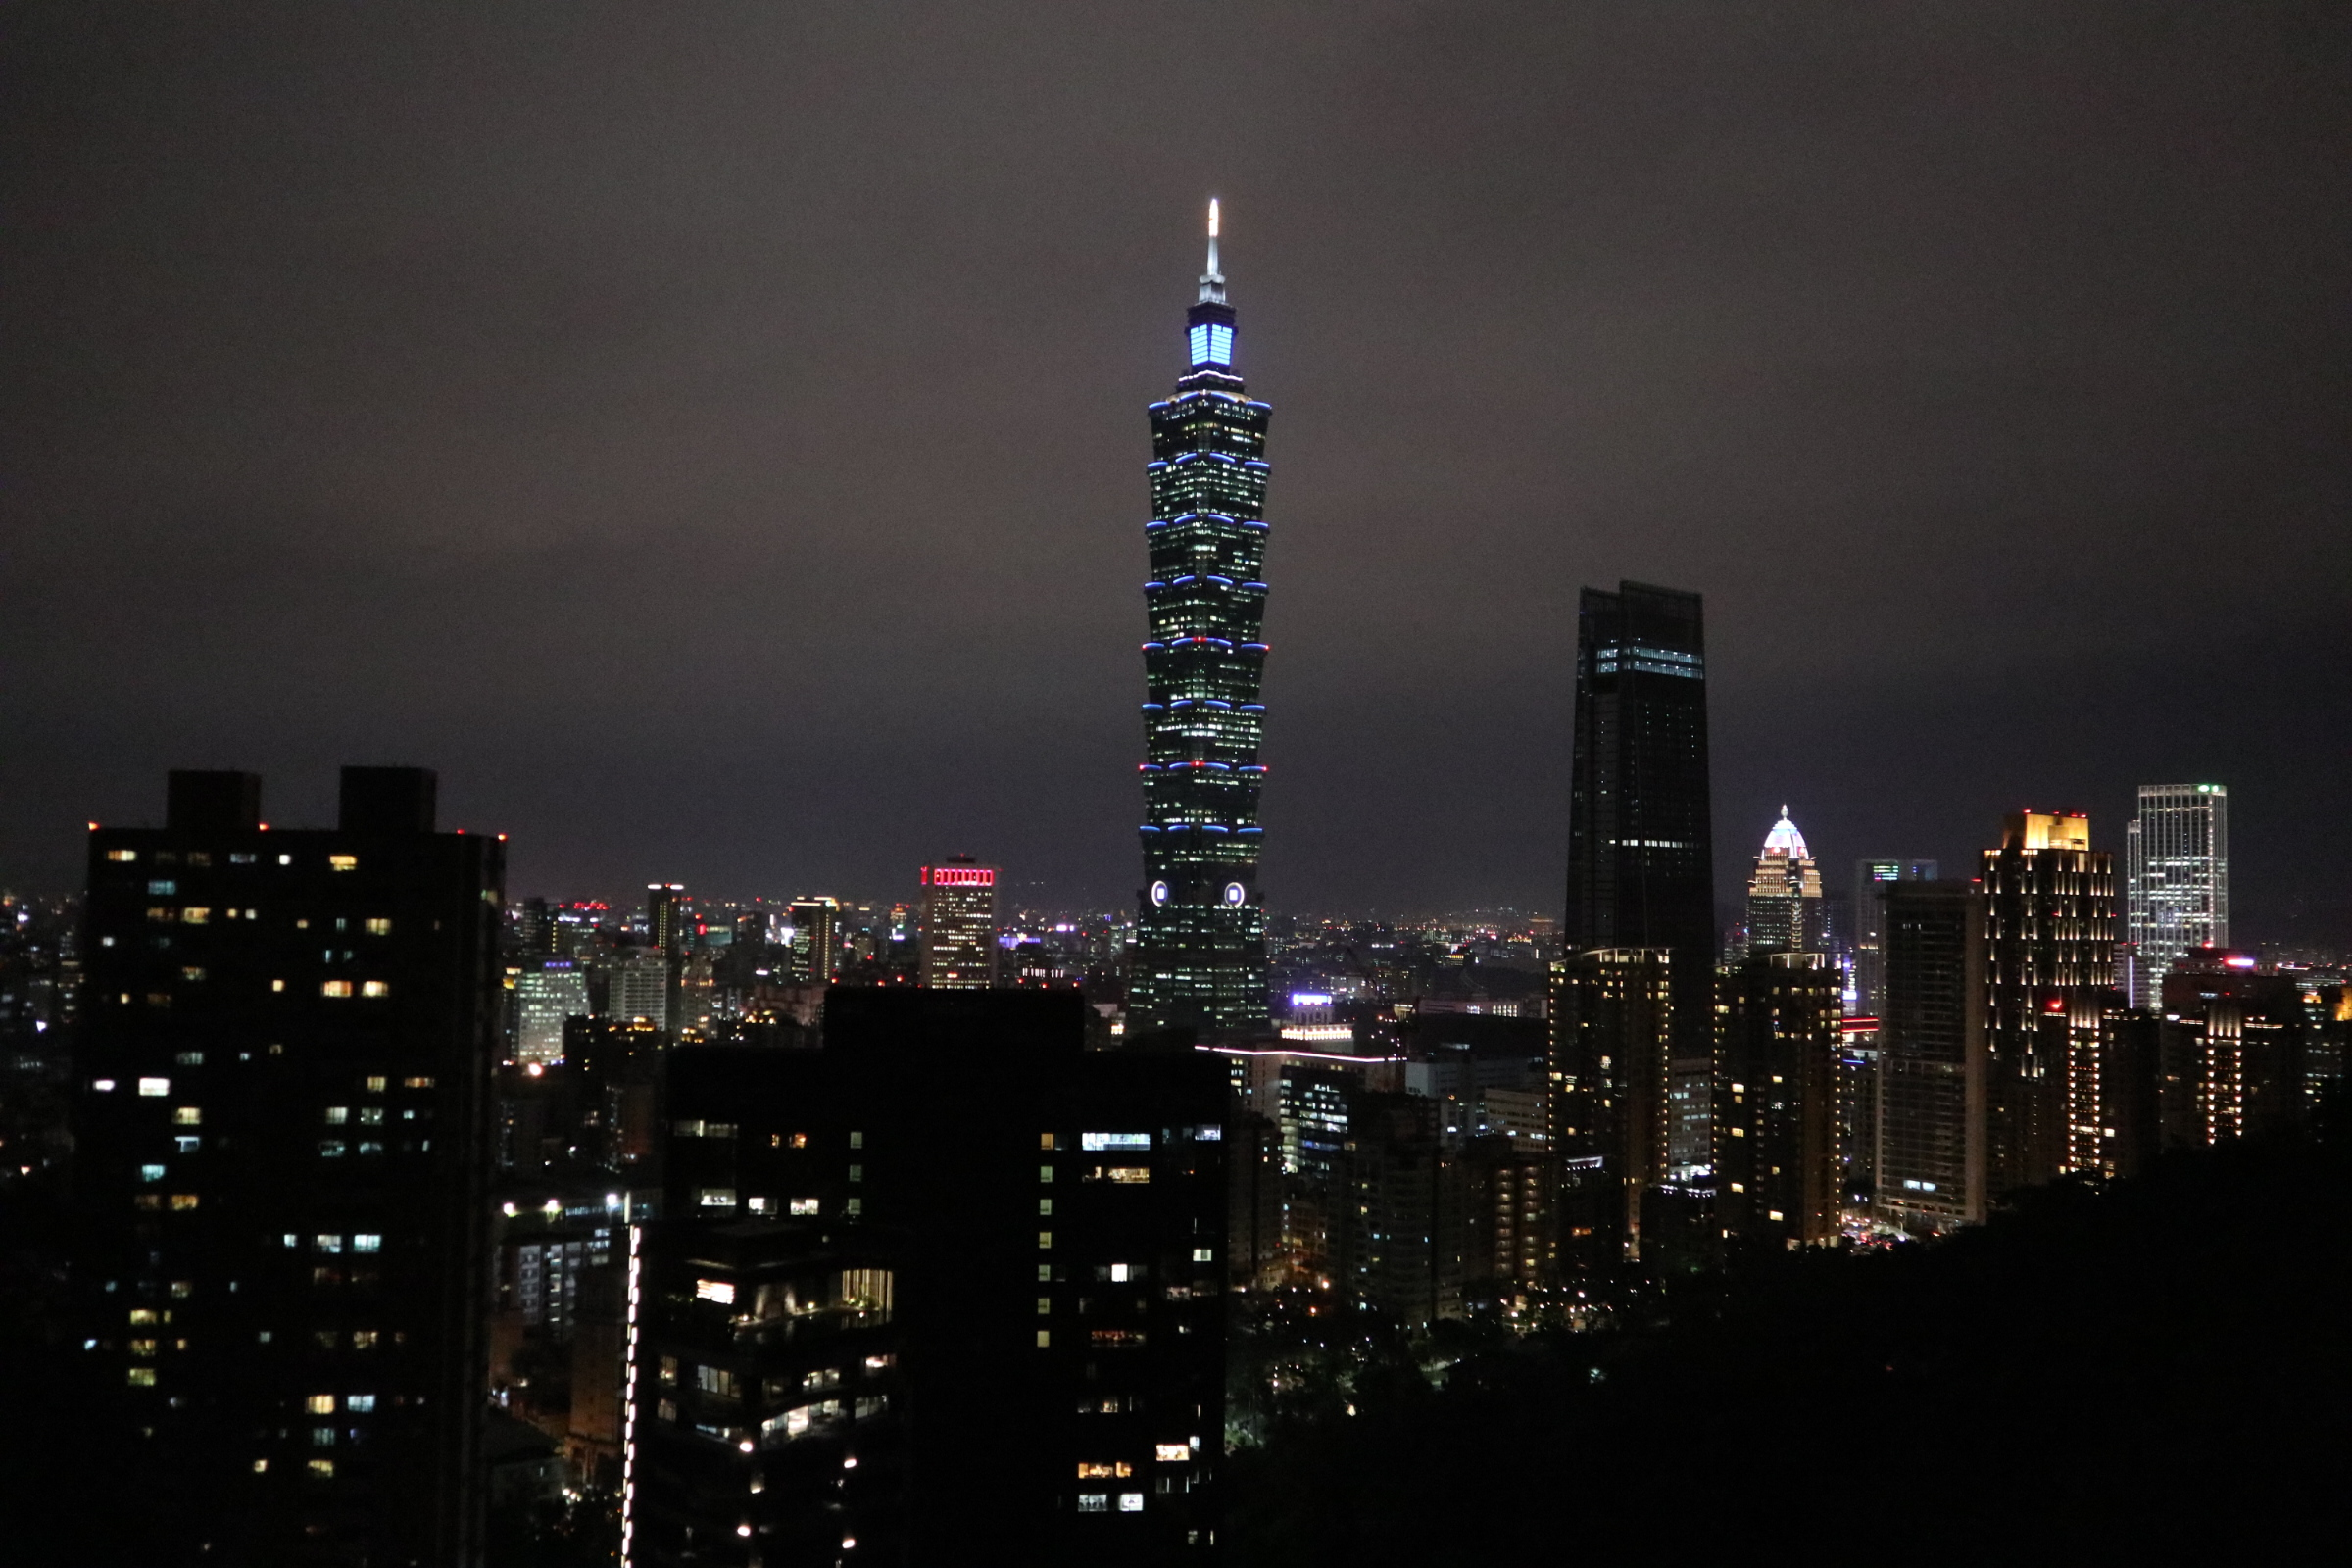 Taipei 101 as seen from the Elephant Mountain!